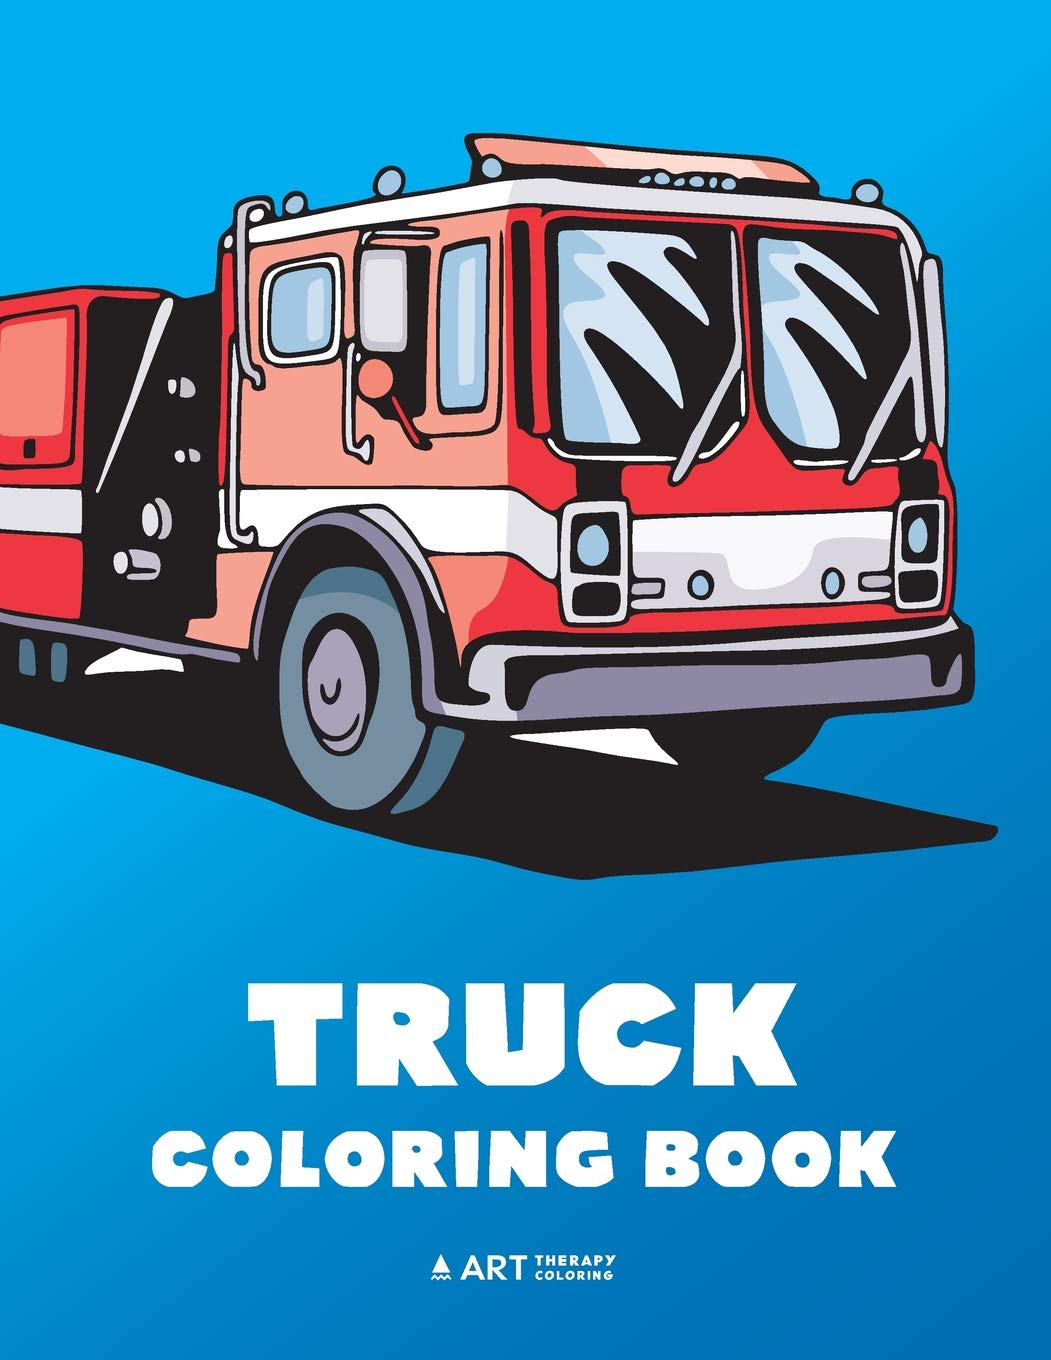 Amazon Com Truck Coloring Book 100 Coloring Pages With Firetrucks Monster Trucks Garbage Trucks Dump Trucks And More For Boys Girls Kids Toddler Baby Ages 1 3 2 4 3 5 4 8 Years Old 9781641261517 Art Therapy Coloring Books